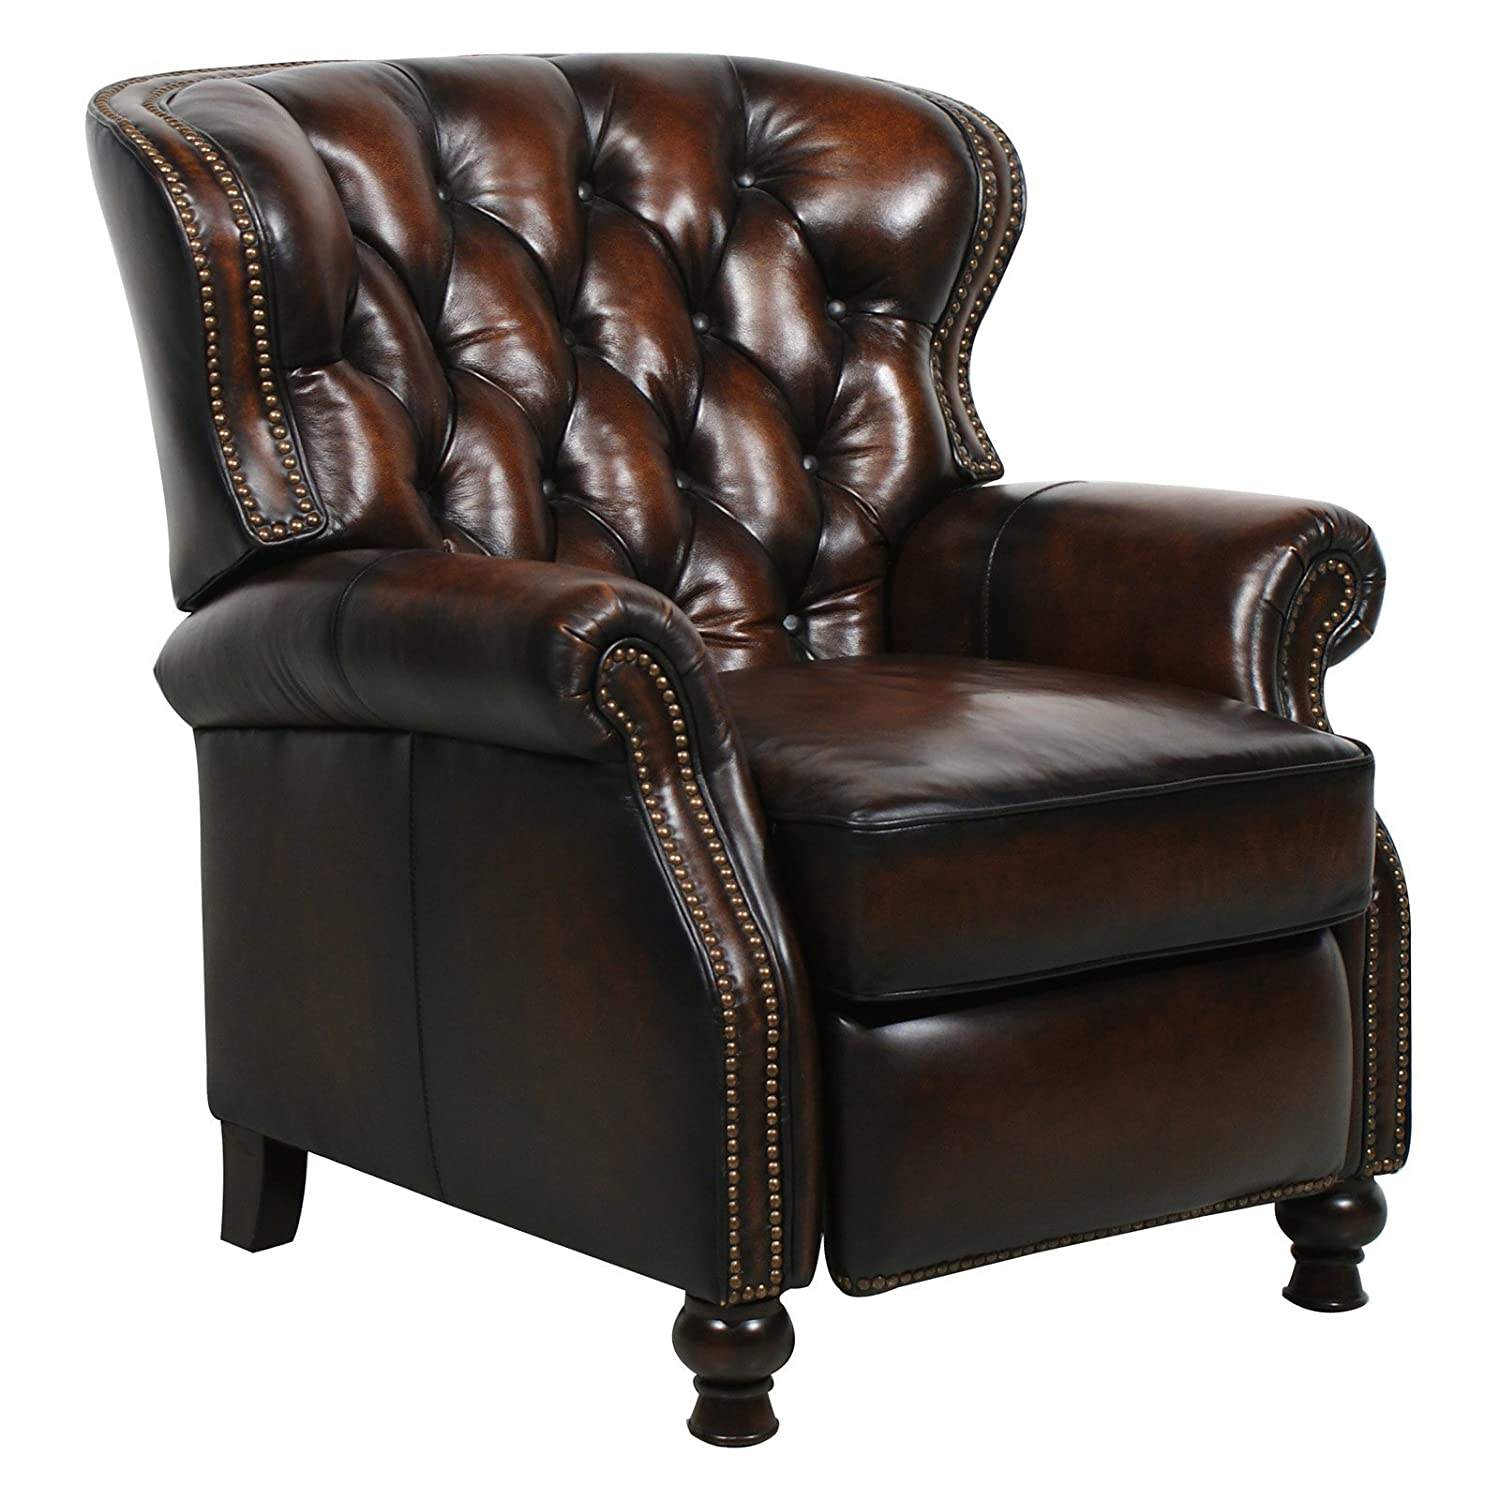 Incroyable Amazon.com: Presidental II Leather Wing Power Electric Recliner Chair By  Barcalounger: Kitchen U0026 Dining